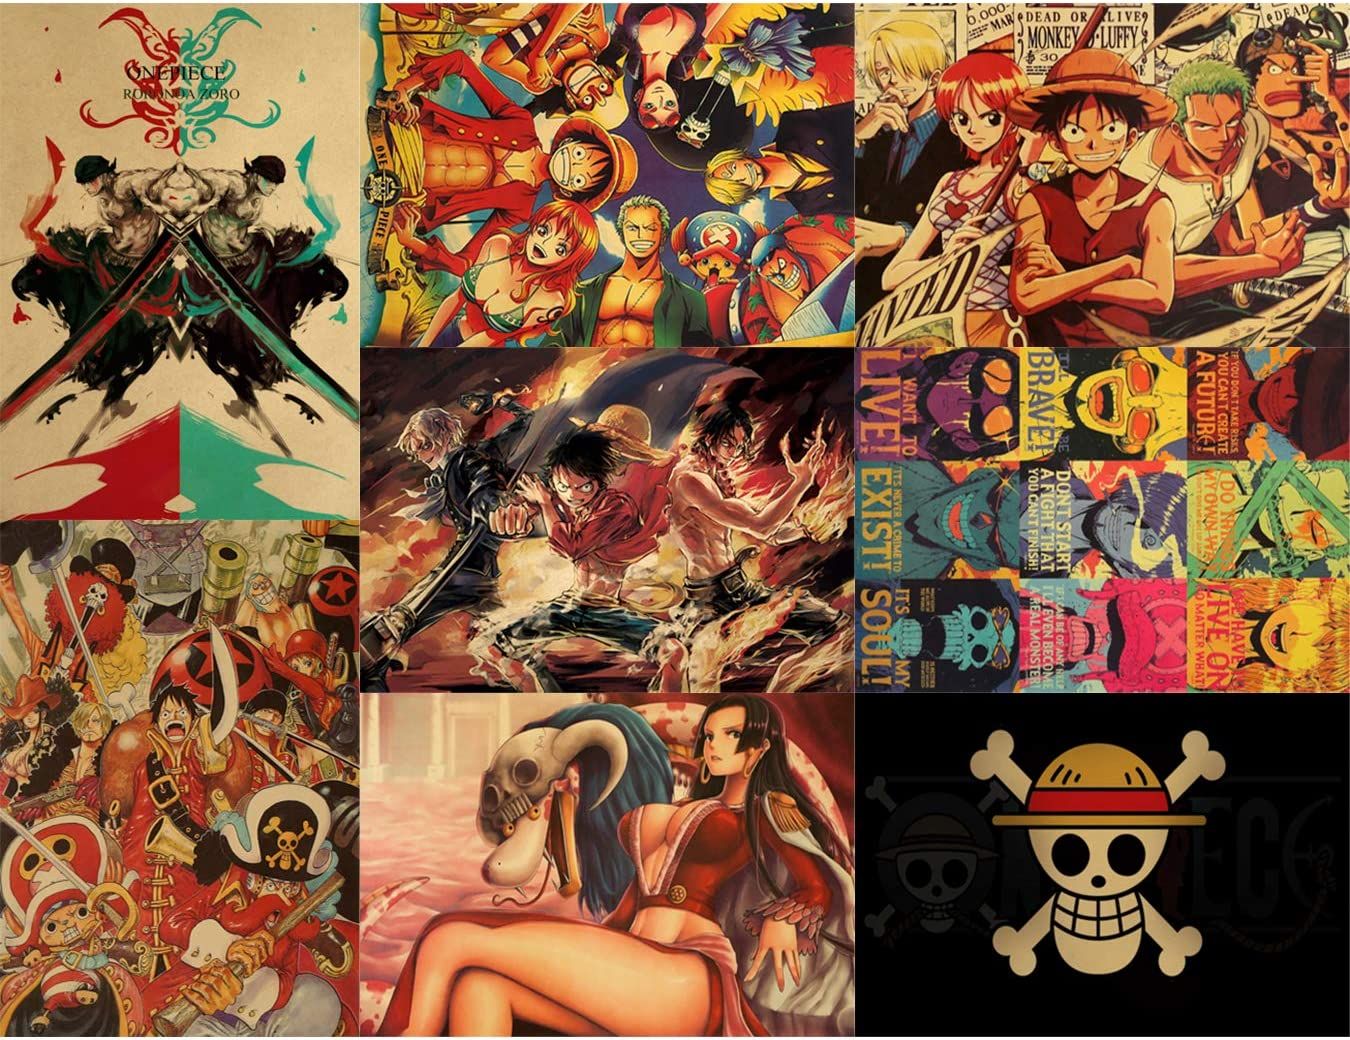 """RINWUNS Poster, One Piece Wall Art Print, Monkey D. Luffy Anime Theme Pictures Decor for Bedroom, Home, Dorms, Office, Gift for Anime Fans, No Frame, Set of 8, 20"""" x 14"""" (OP-03)"""